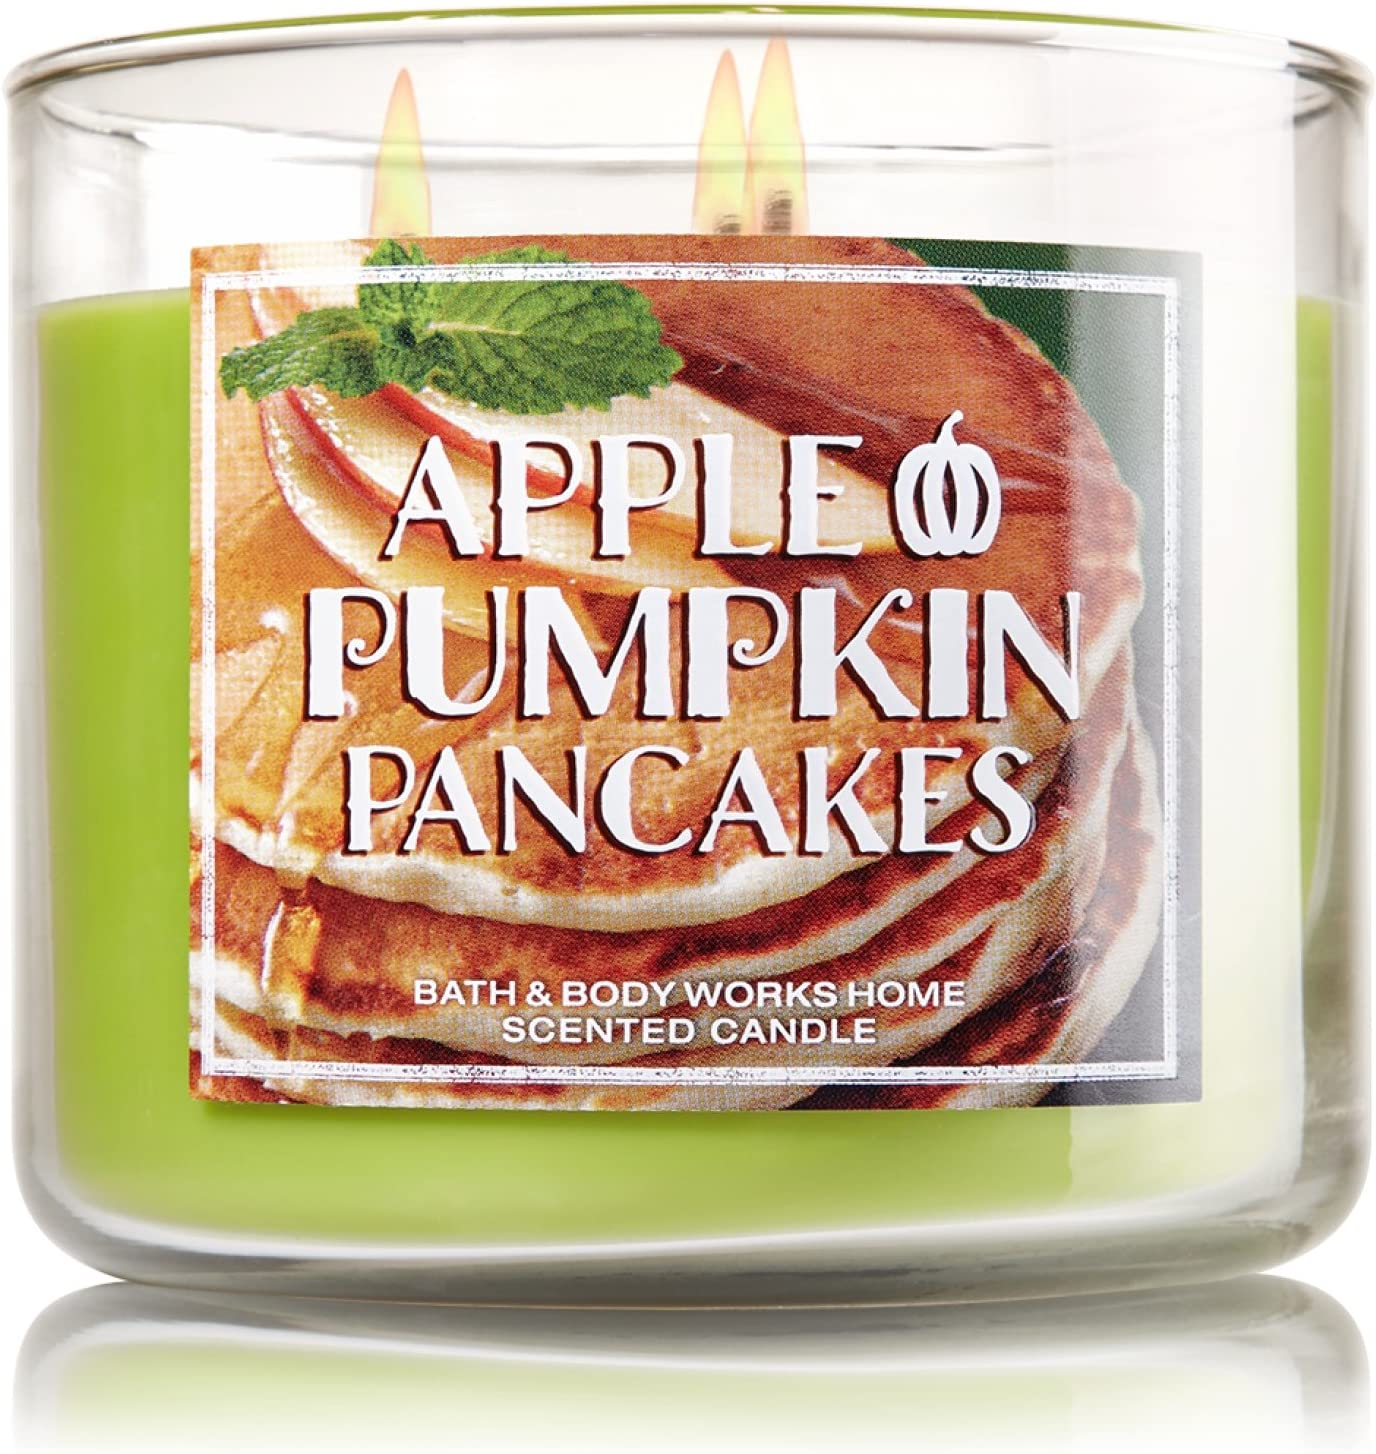 Bath and Body Works Apple Pumpkin Pancakes 3 Wick 14.5 Oz Candle